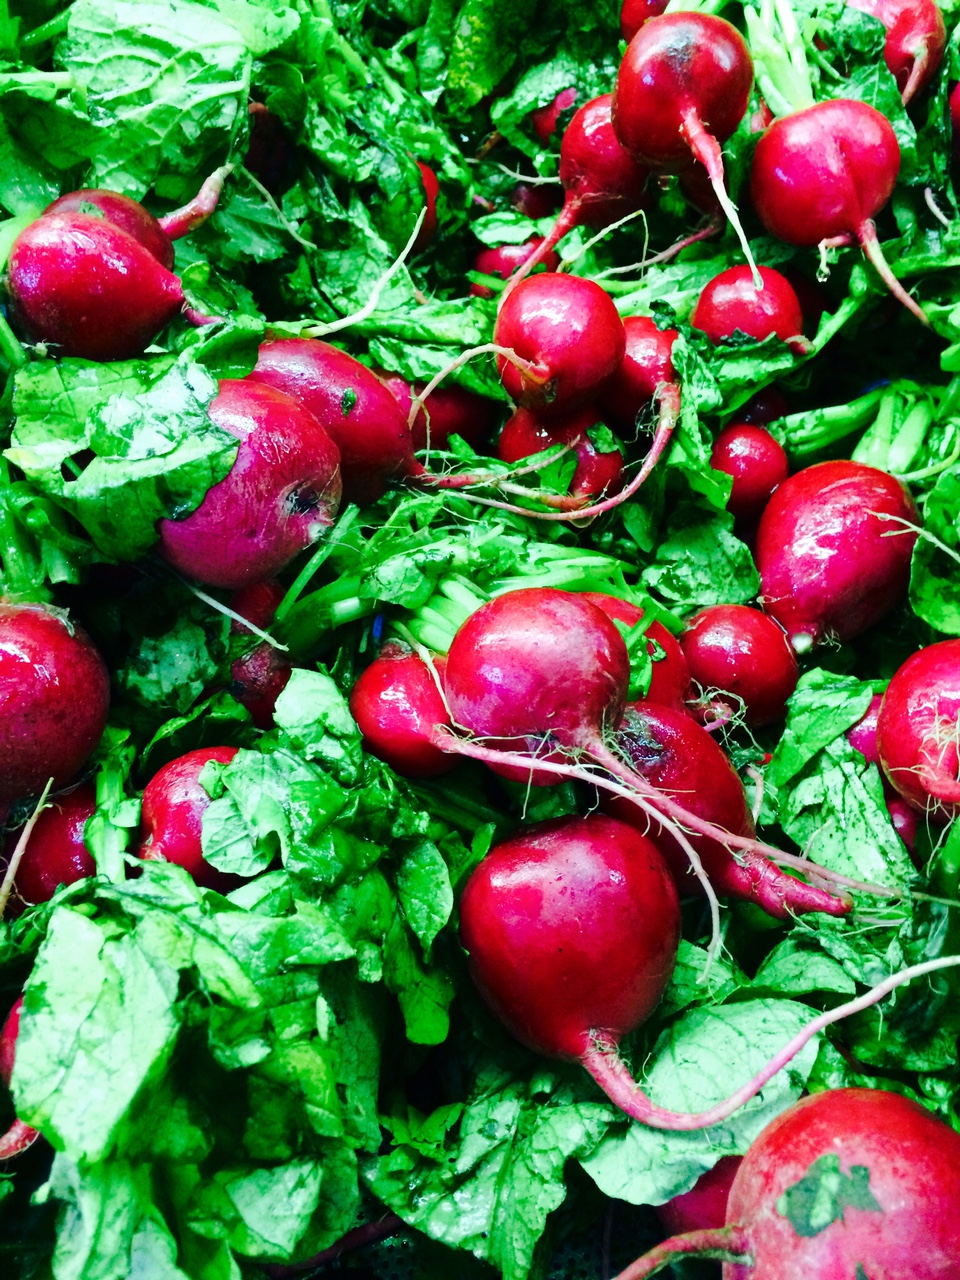 radishes with greens attached